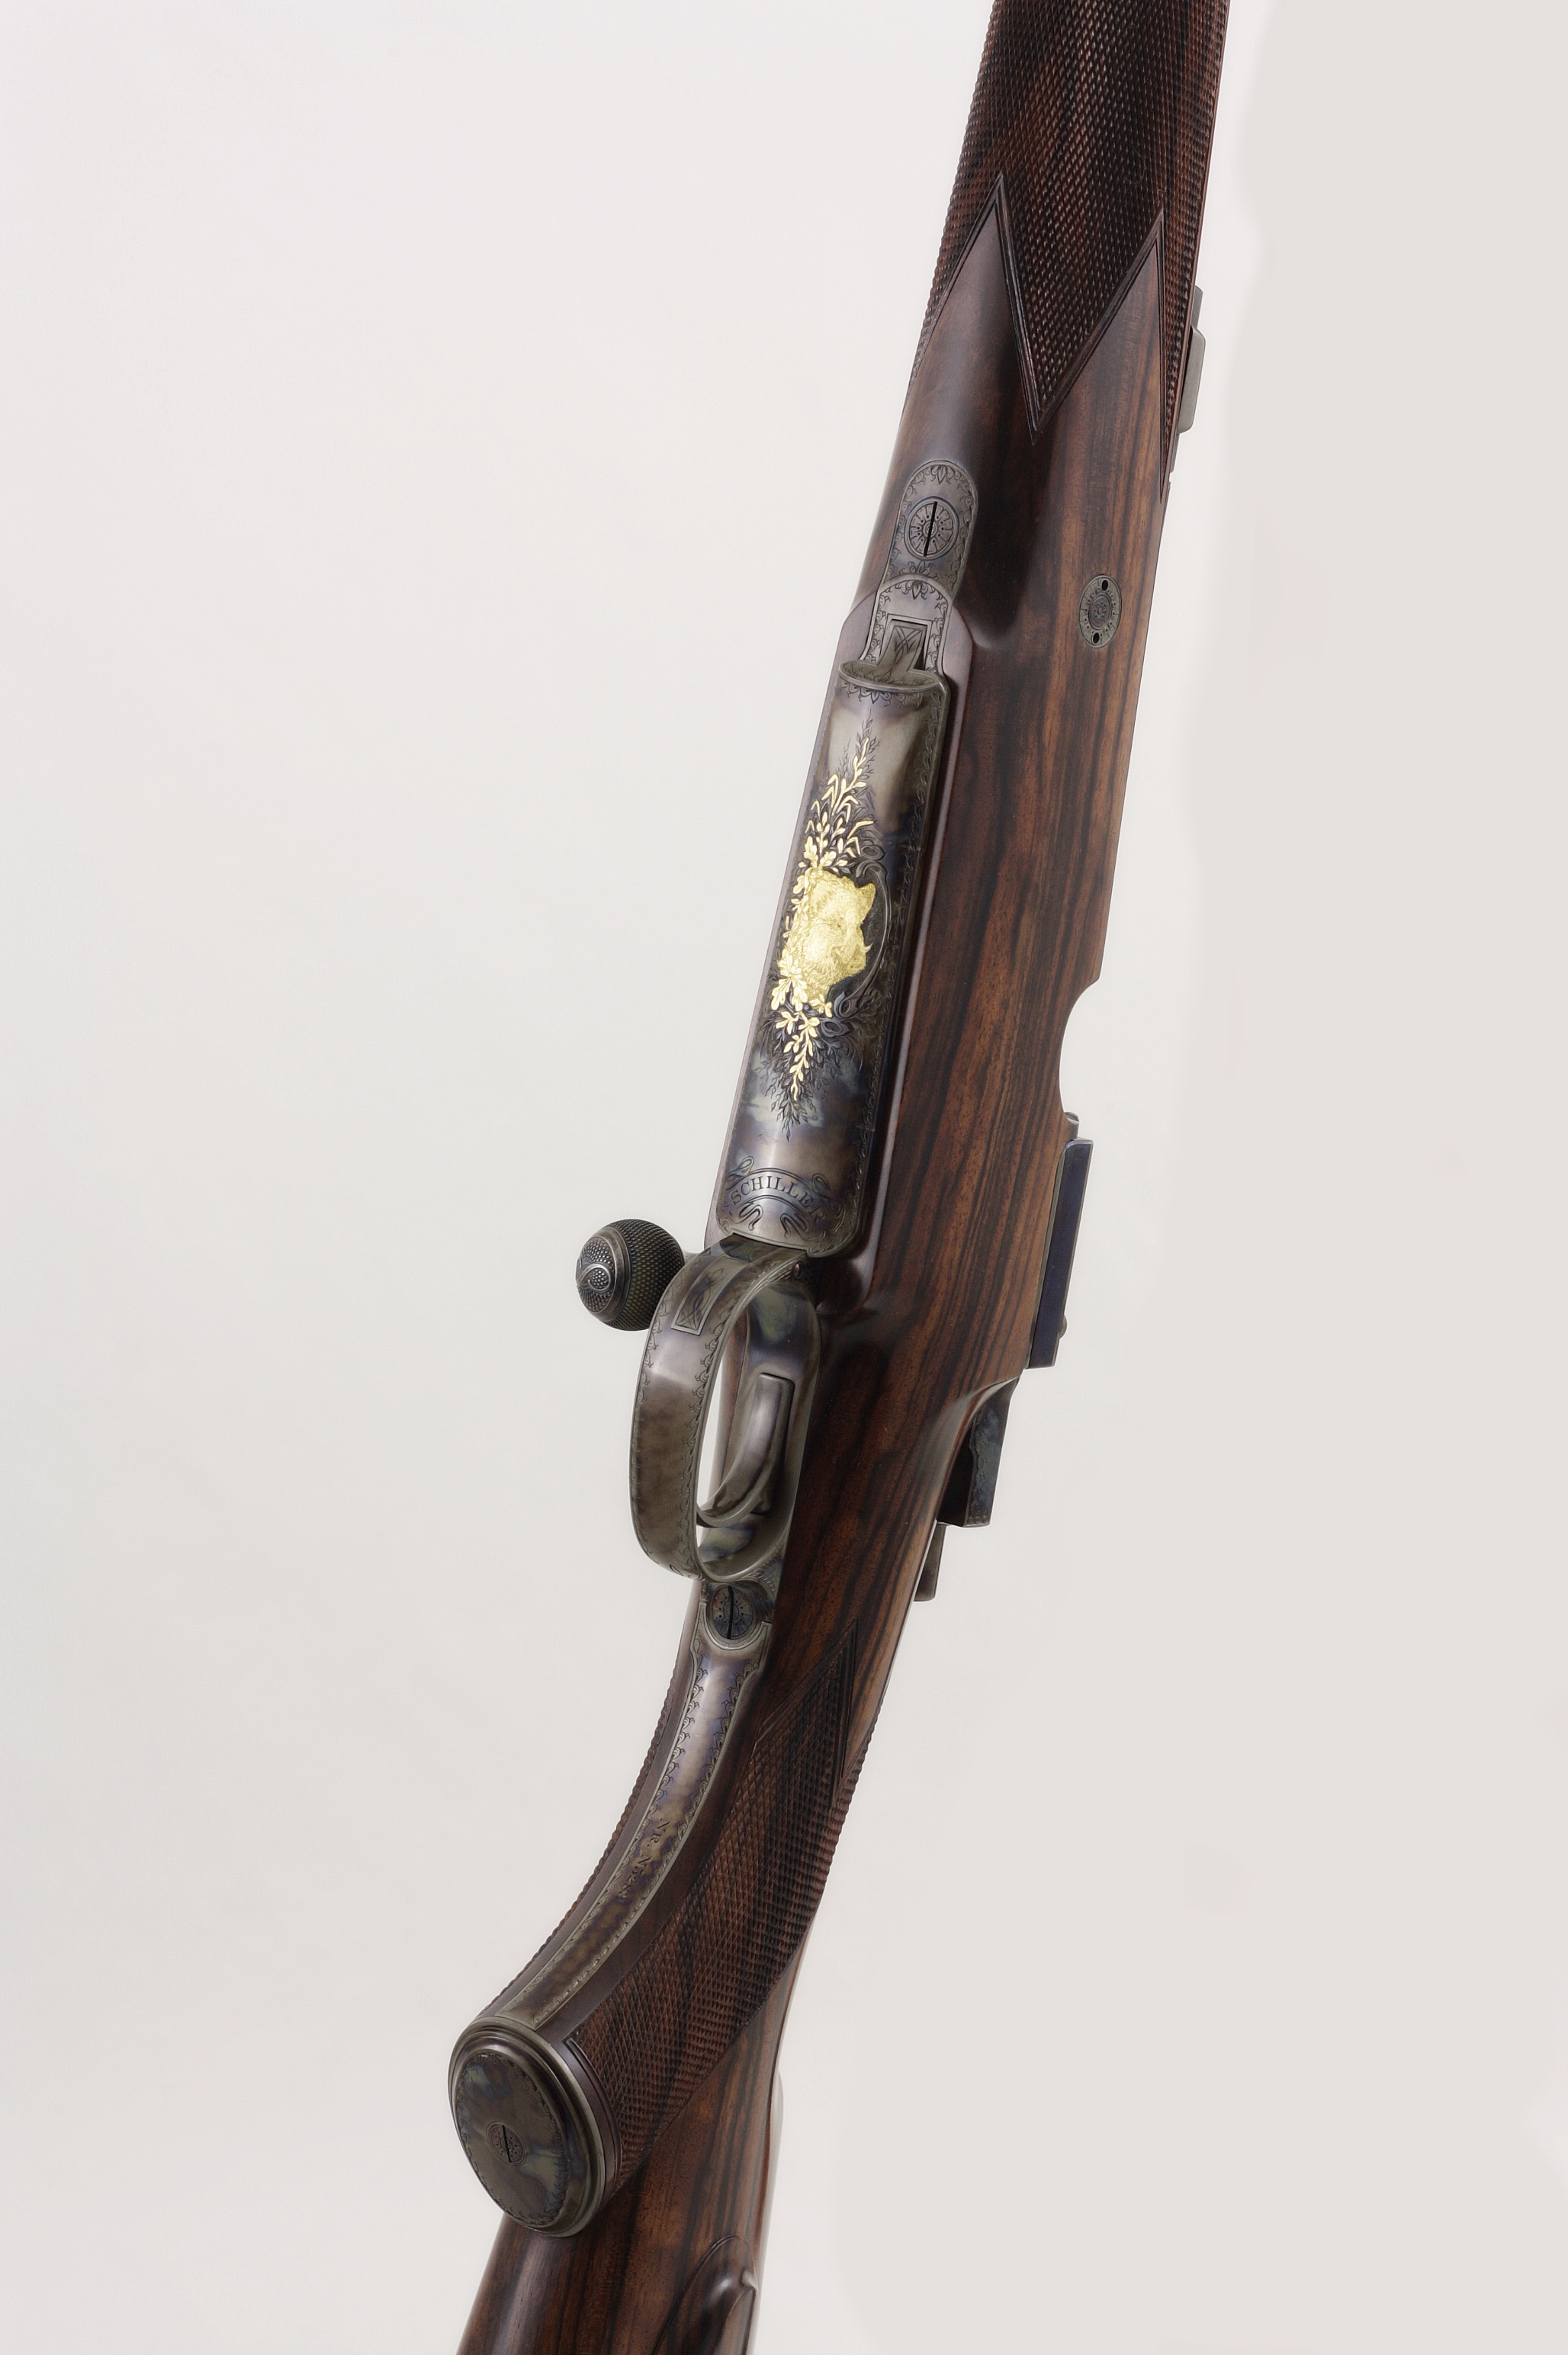 [Translate to en:] Schiller Mauser Repetierer 8x68 Leutershausen Waffen Flühr